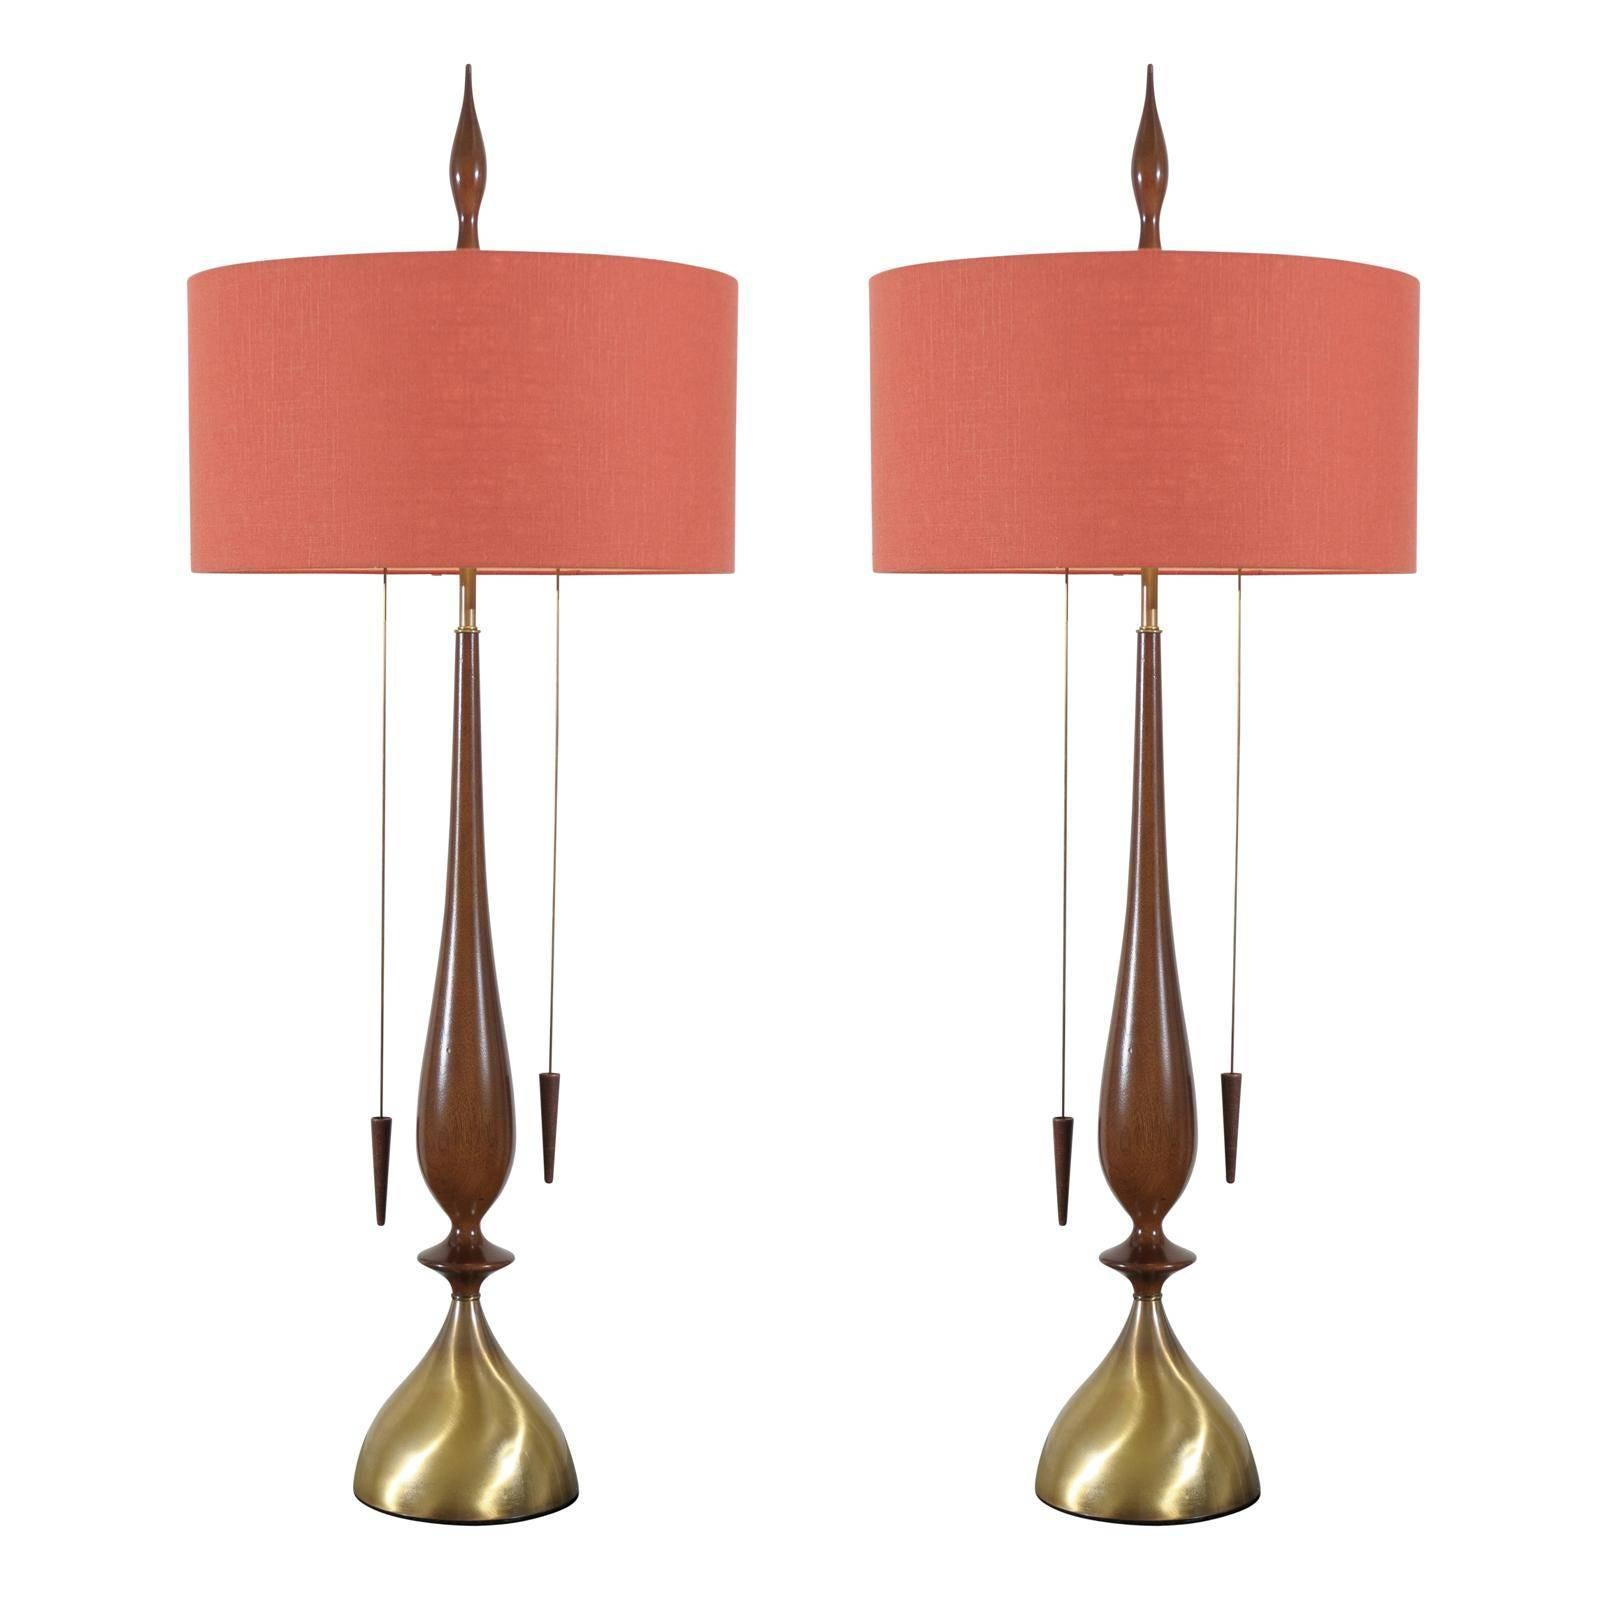 Monumental Pair of Walnut and Brass Lamps by Frederick Cooper, circa 1960